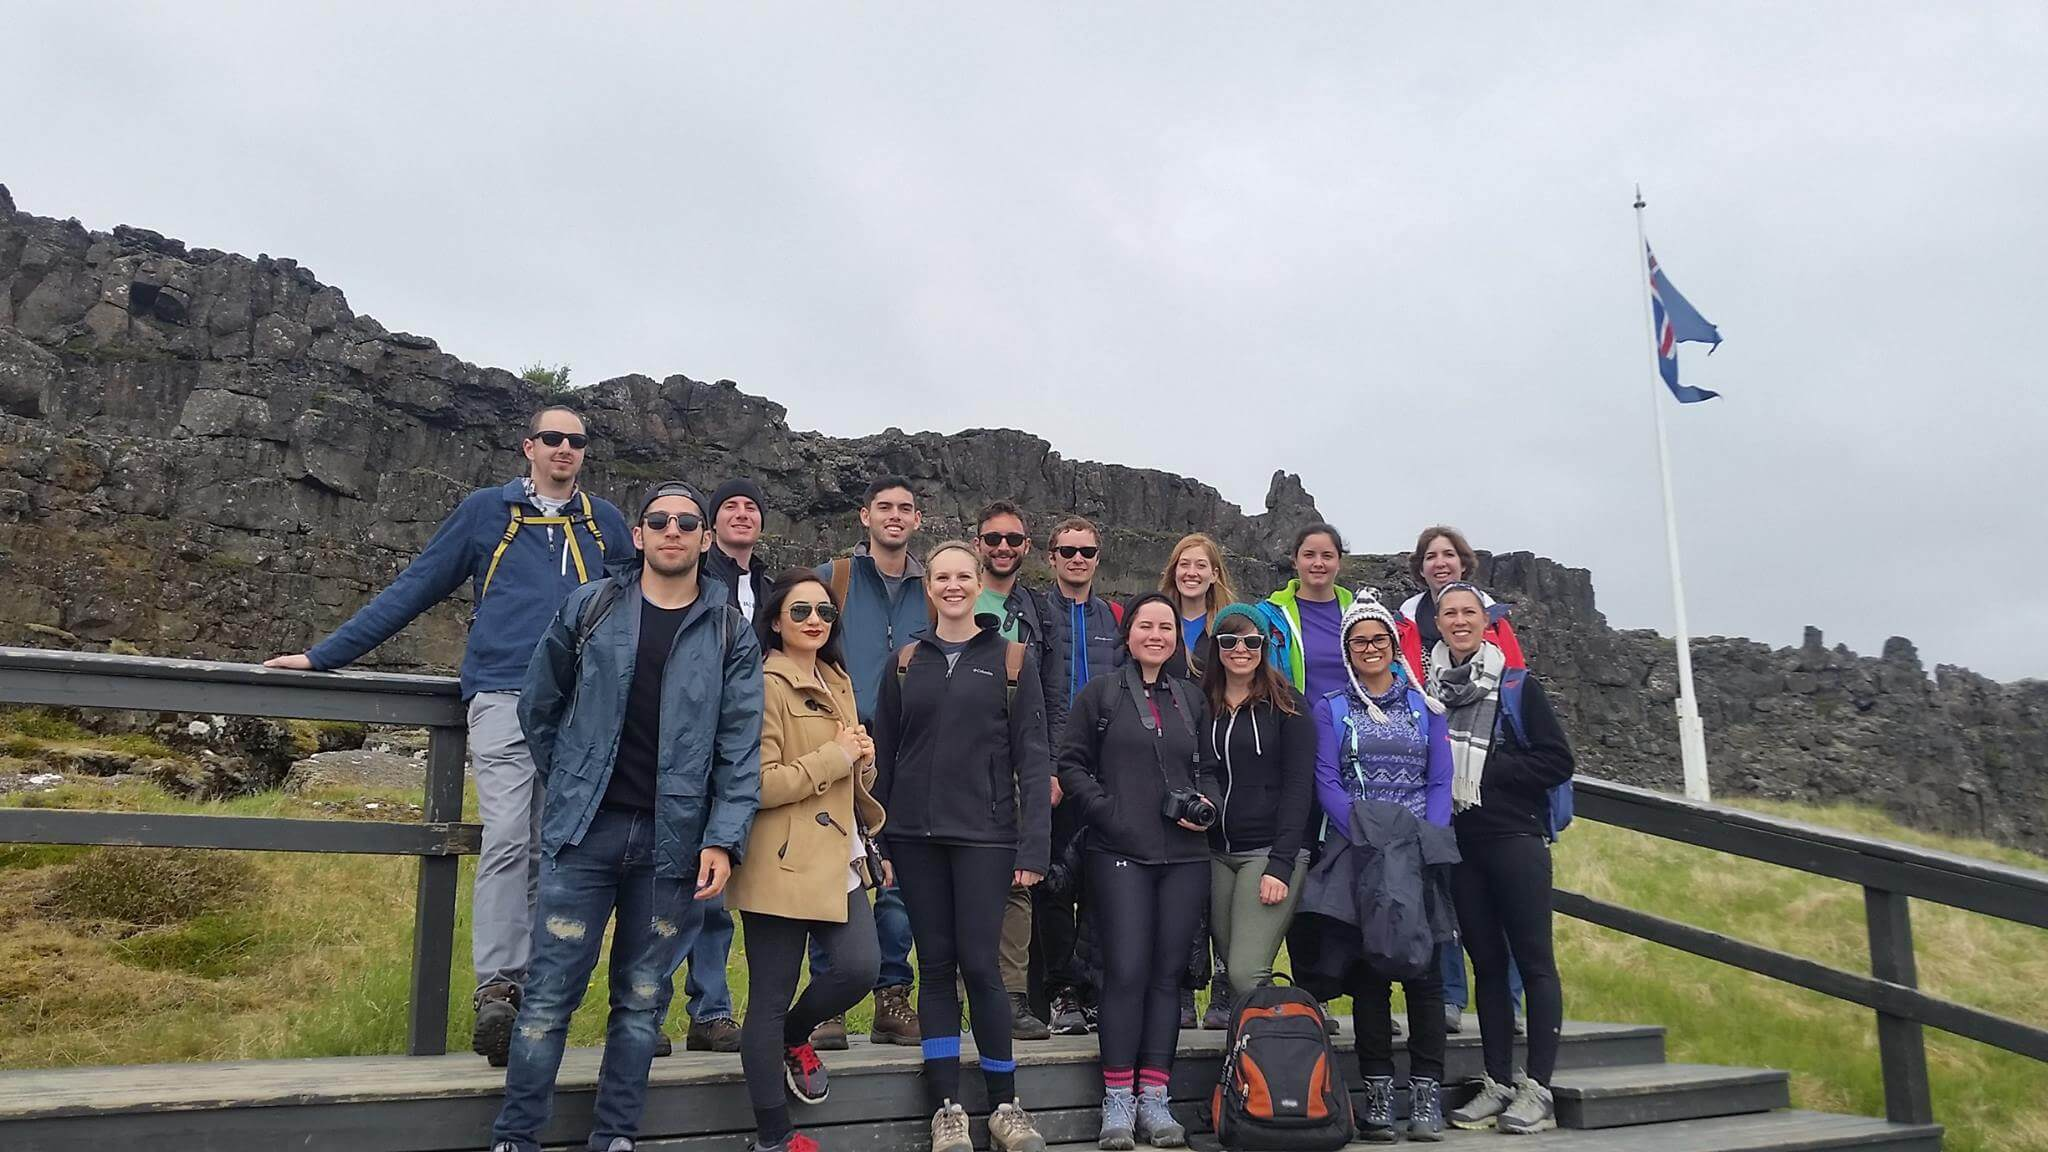 friends-iceland-group-travel